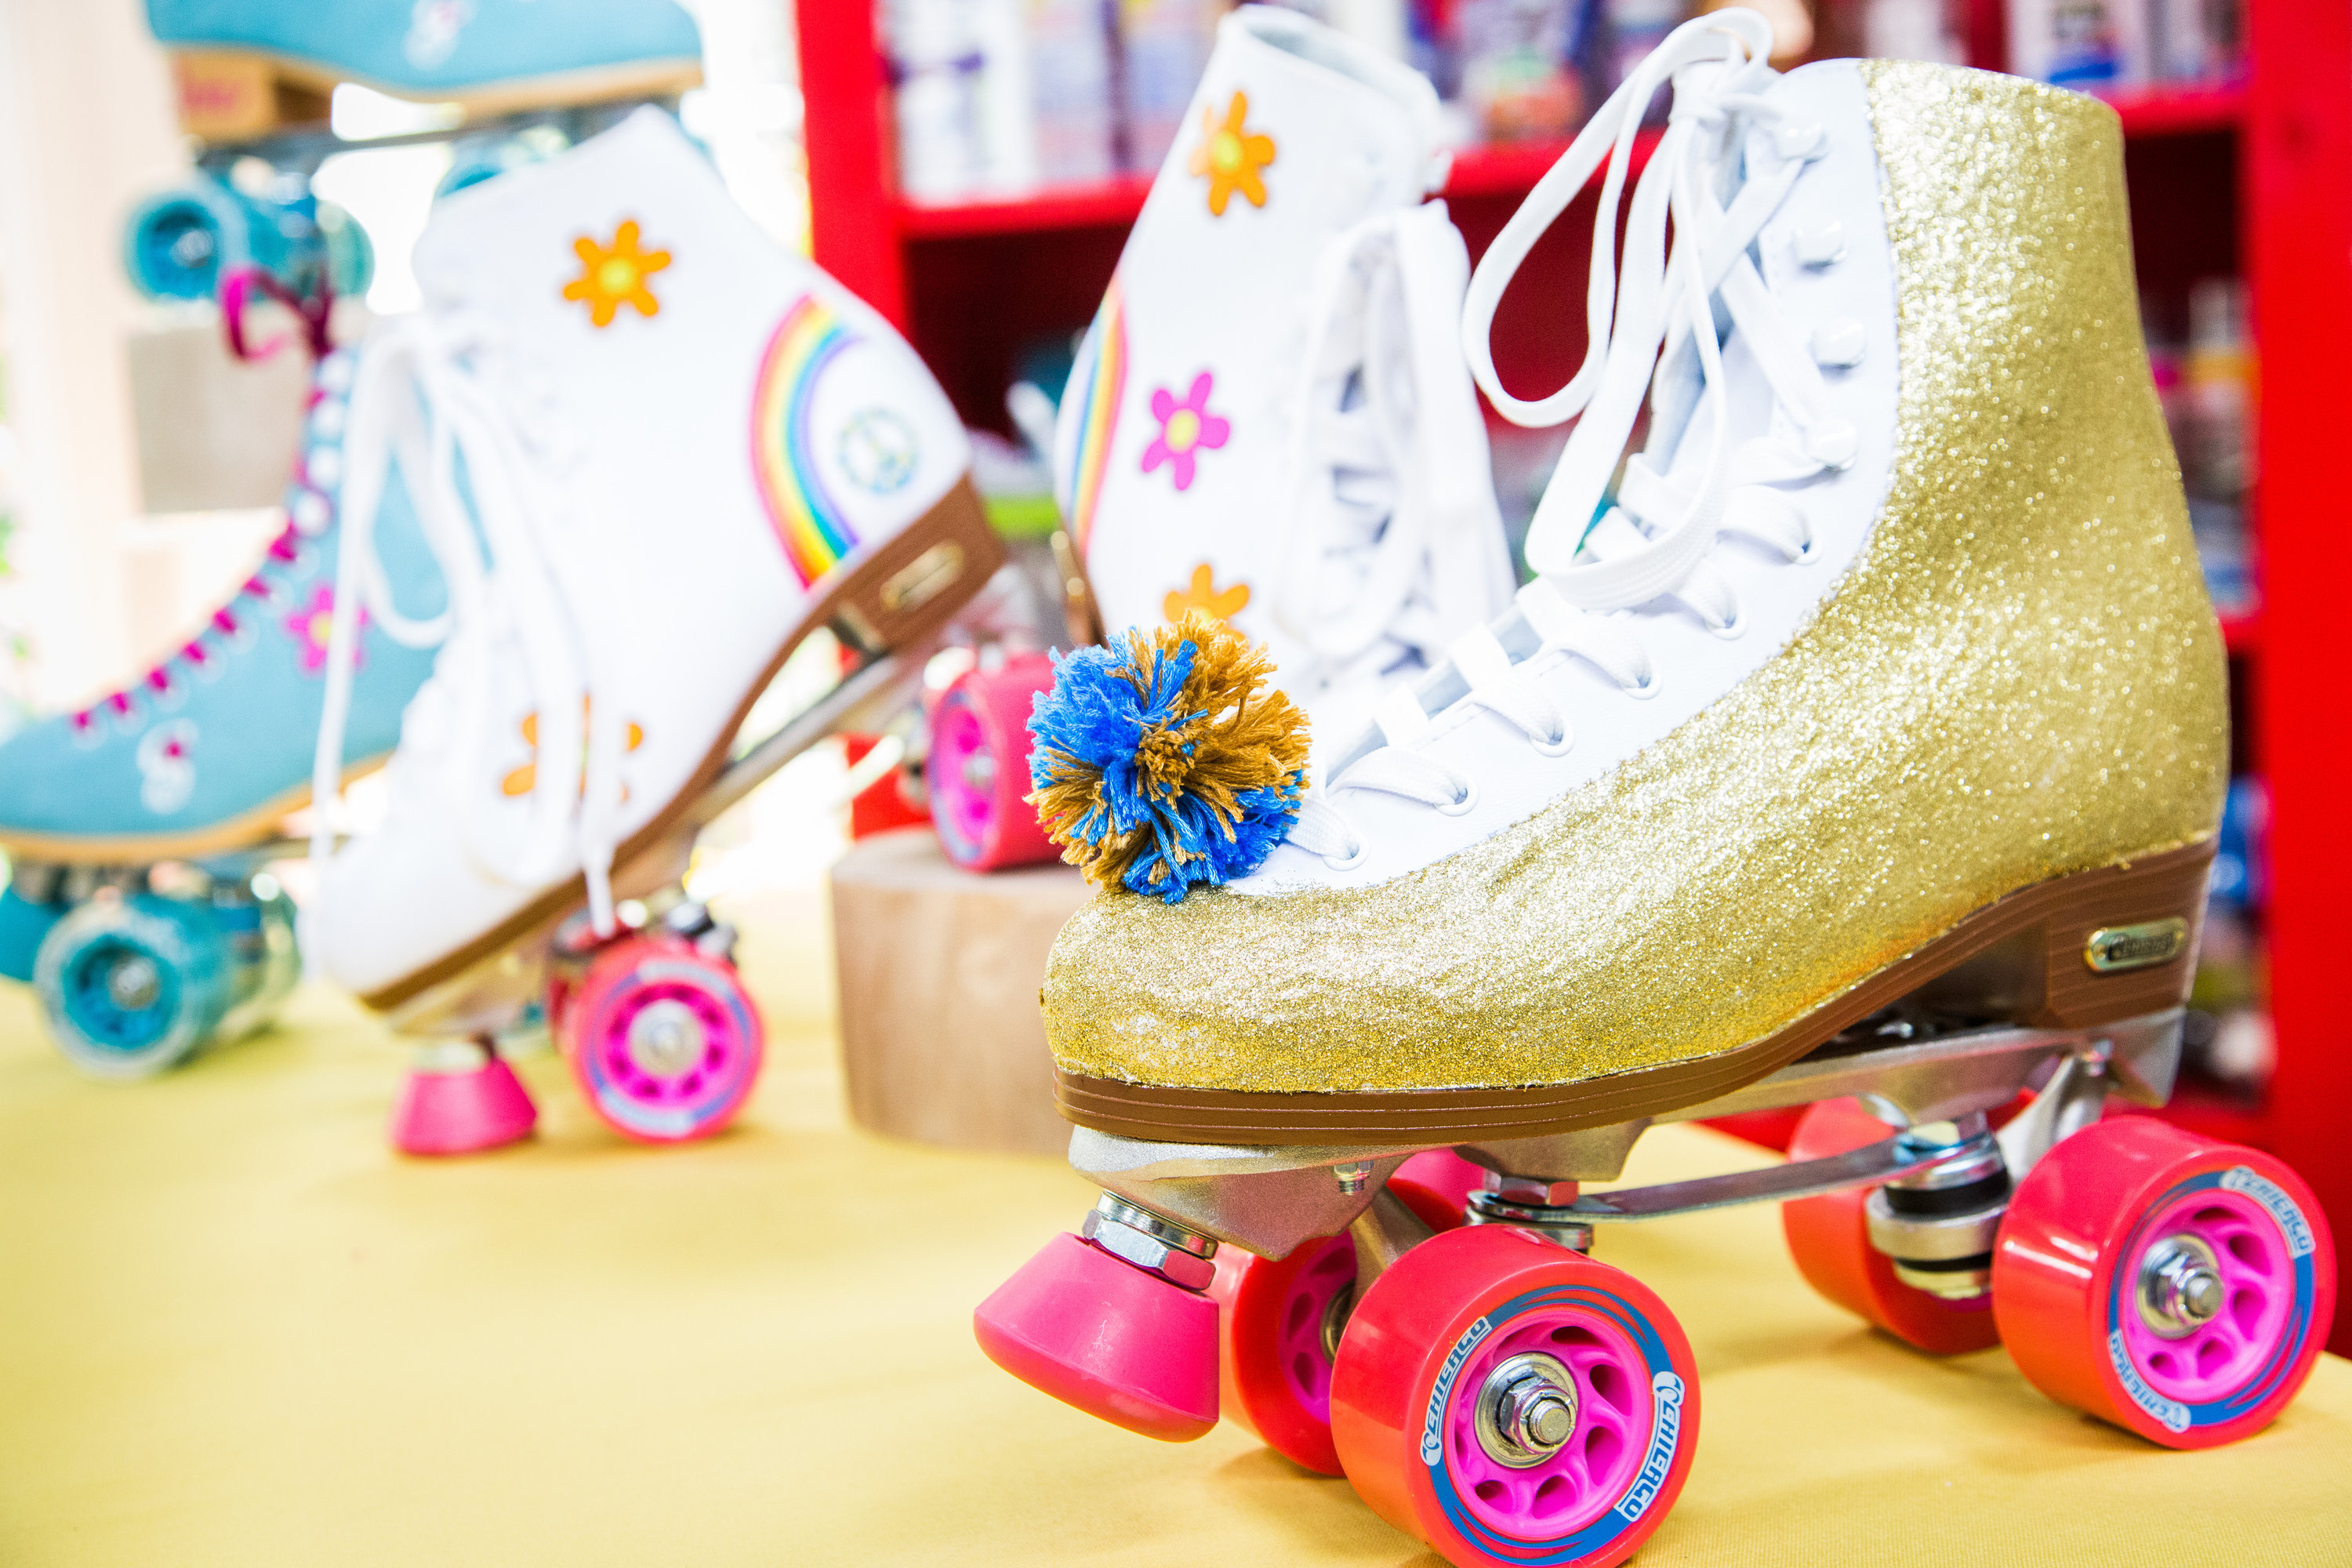 DIY Personalized Roller Skates   Home & Family   Hallmark Channel